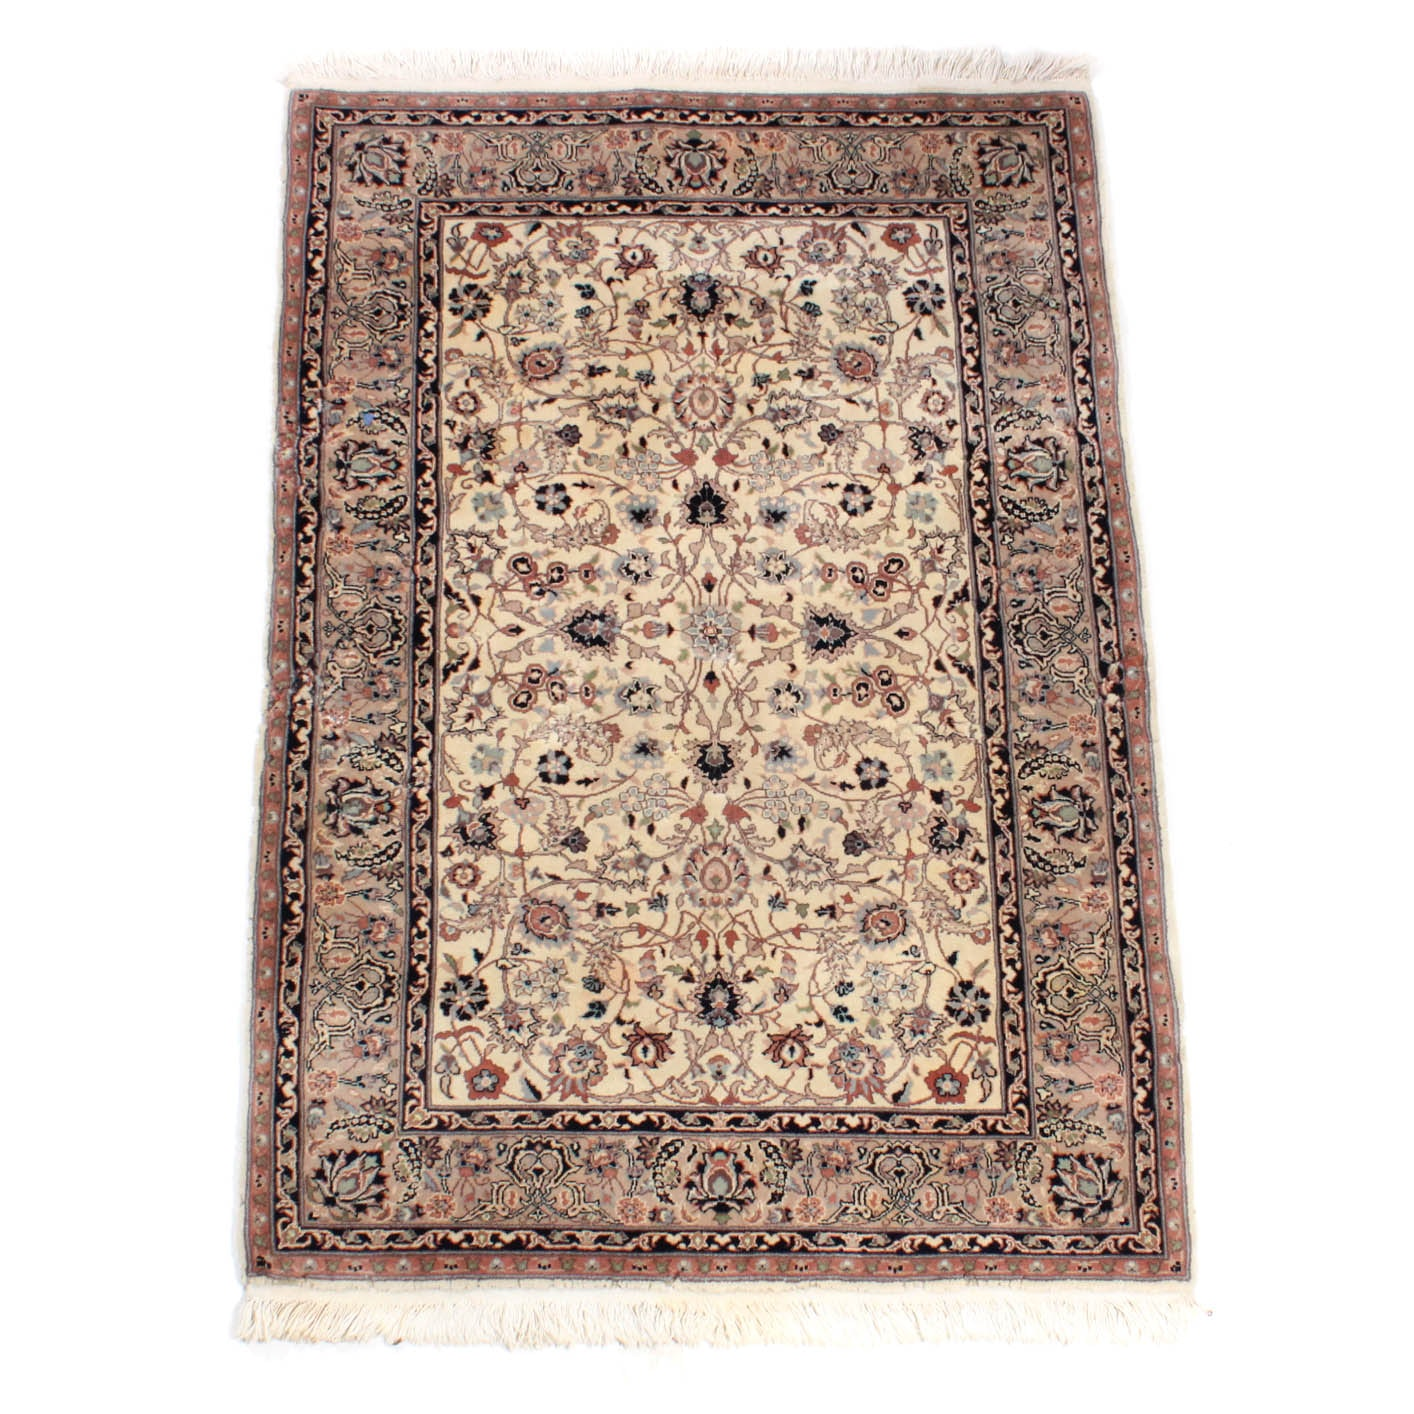 Vintage Hand Knotted Sino-Persian Tabriz Rug